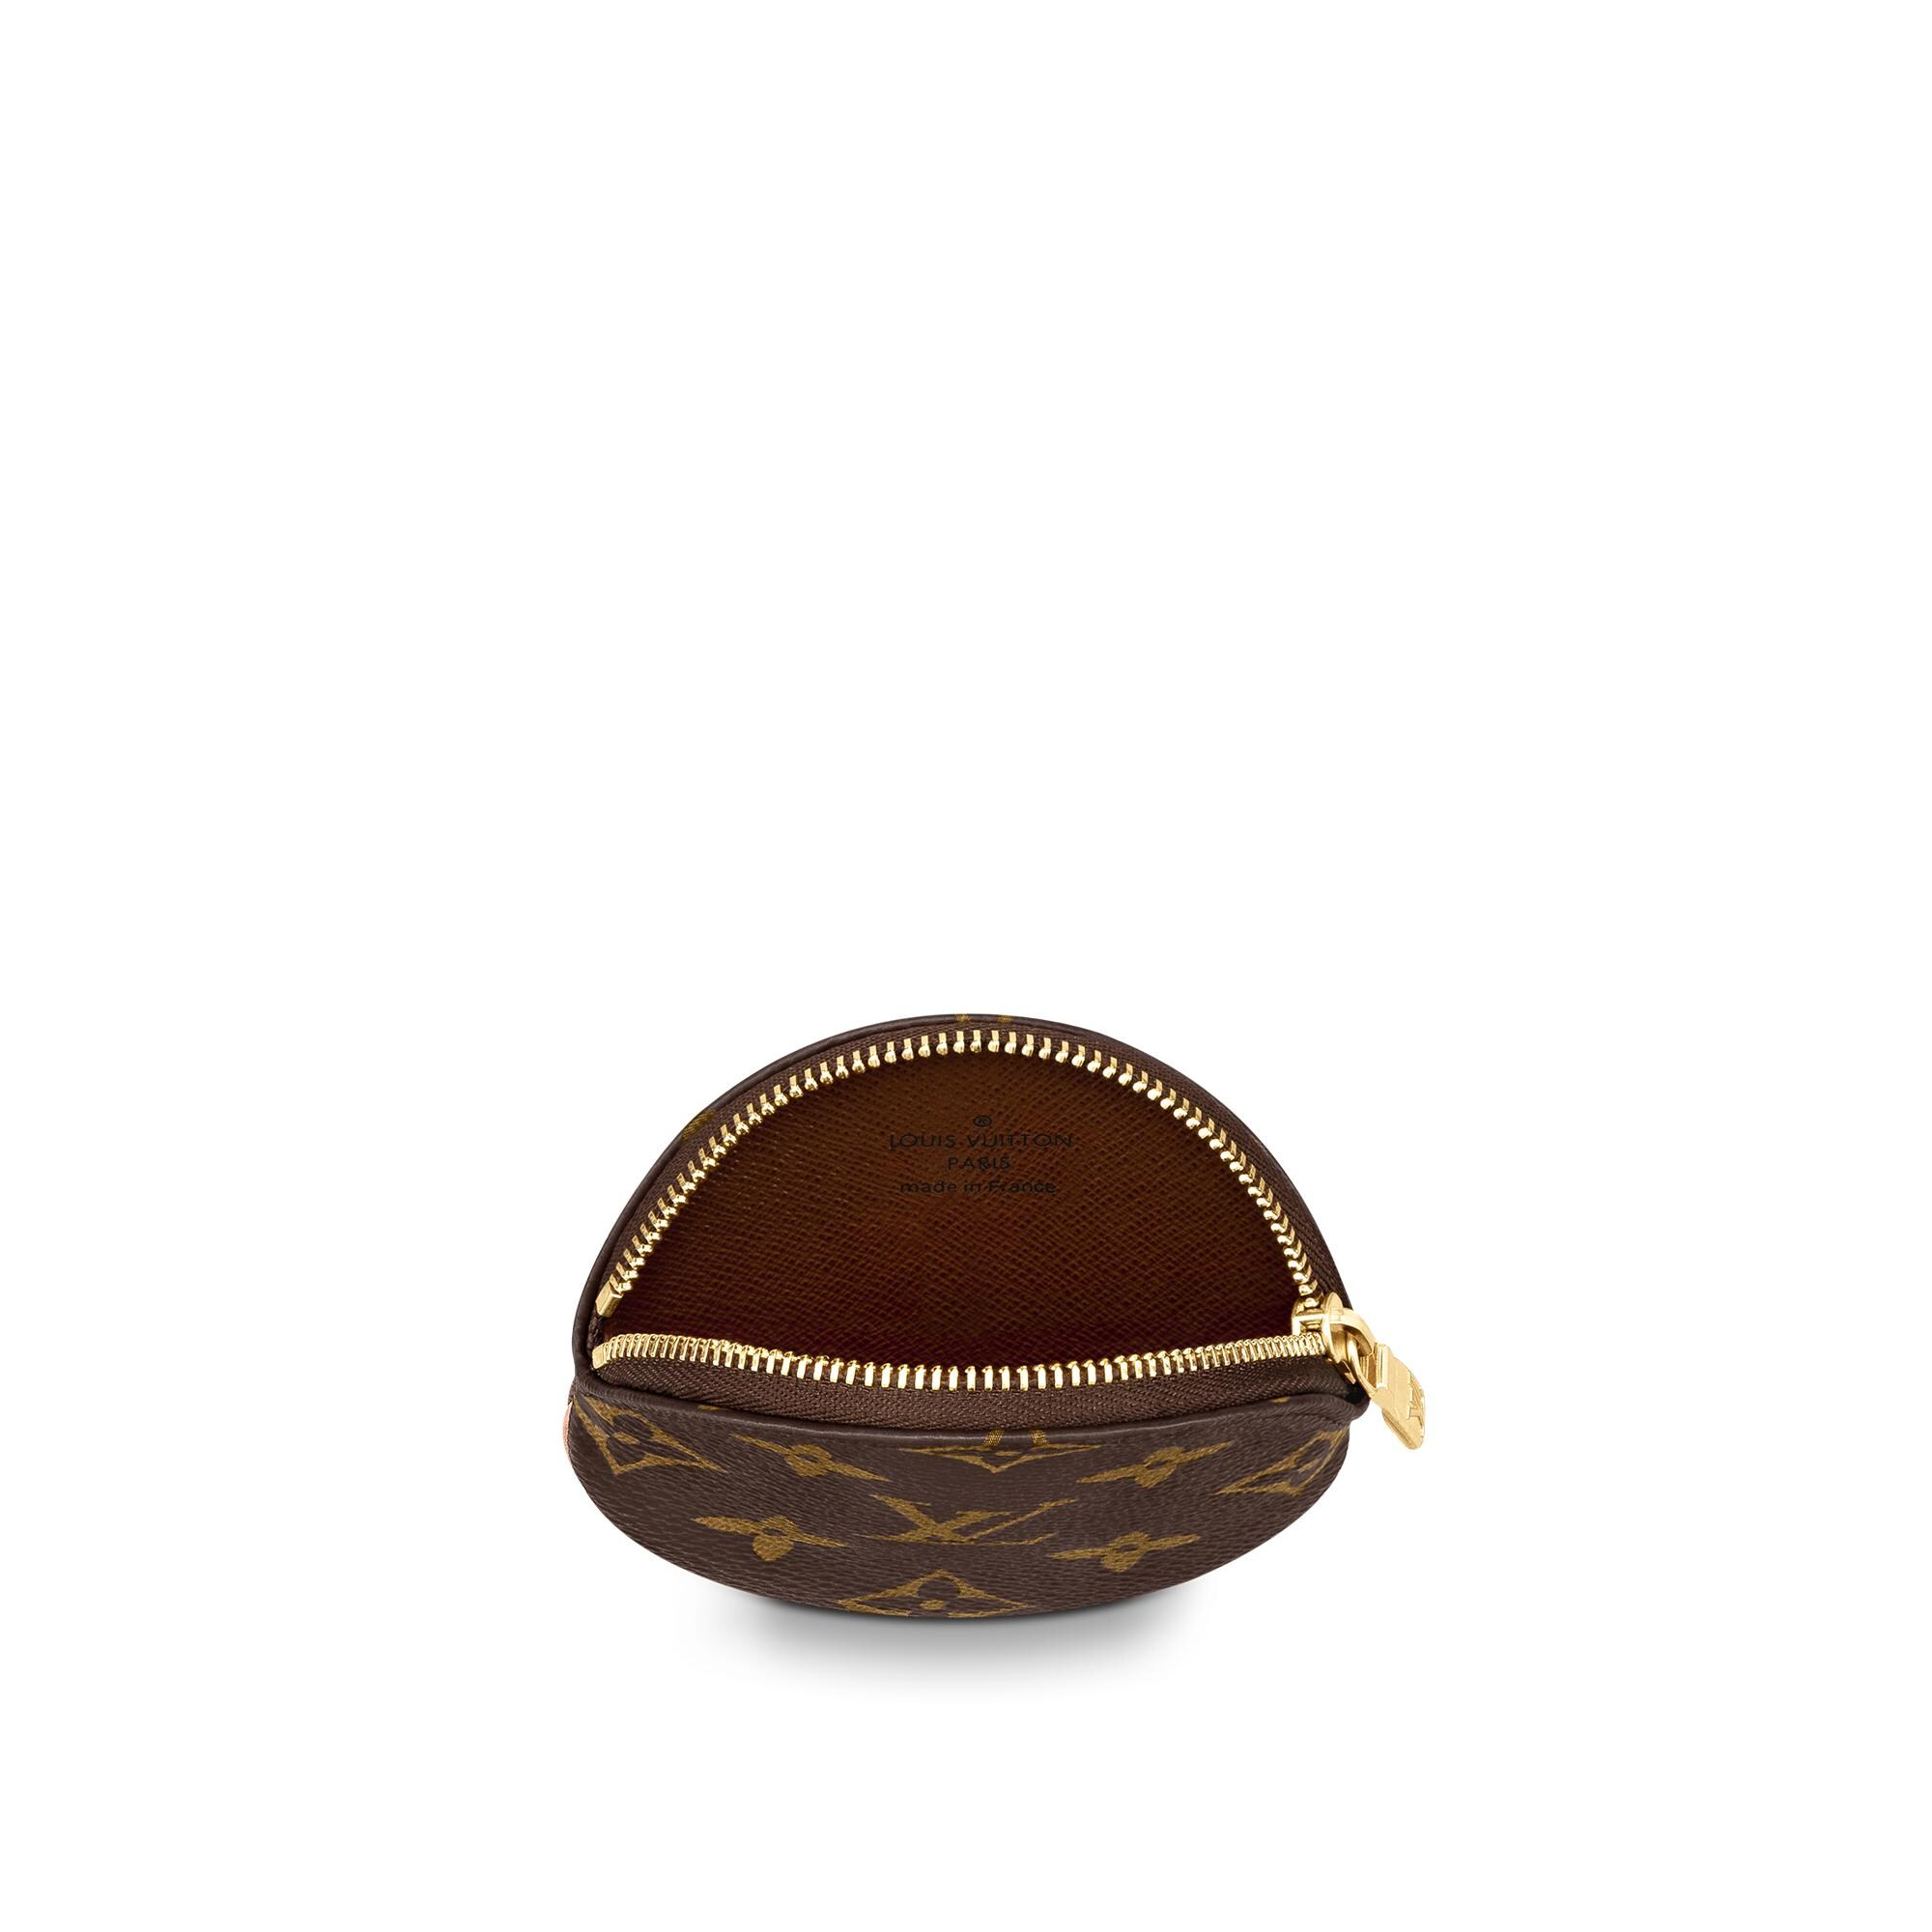 Le Meilleur Round Coin Purse Small Leather Goods Louis Vuitton Ce Mois Ci